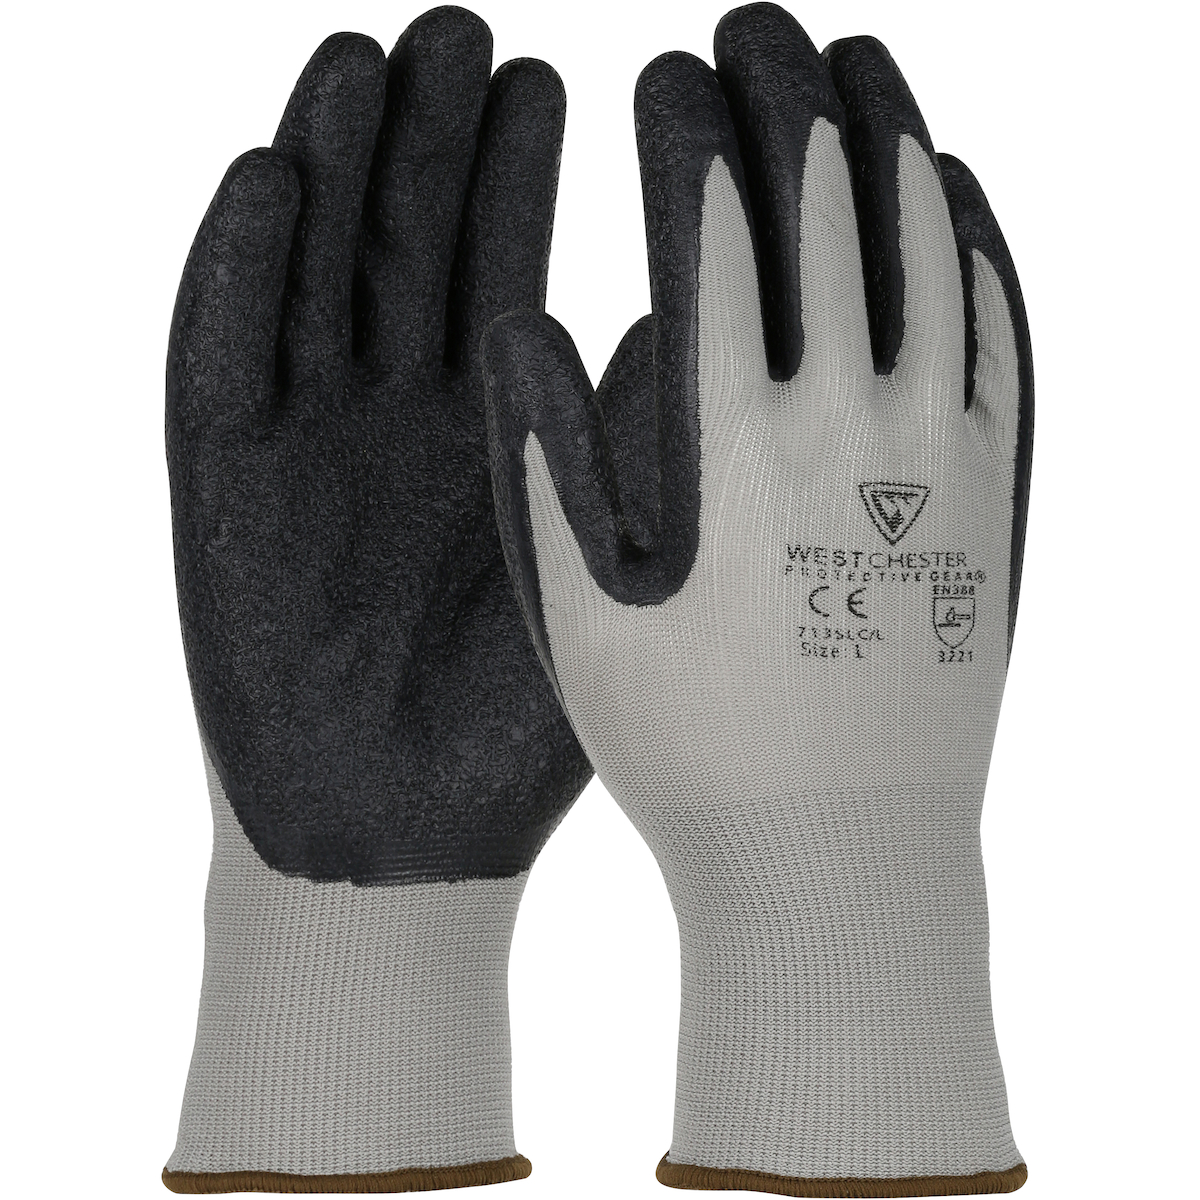 Seamless Knit Nylon Glove with Latex Coated Crinkle Grip on Palm & Fingers, Gray, 2XL